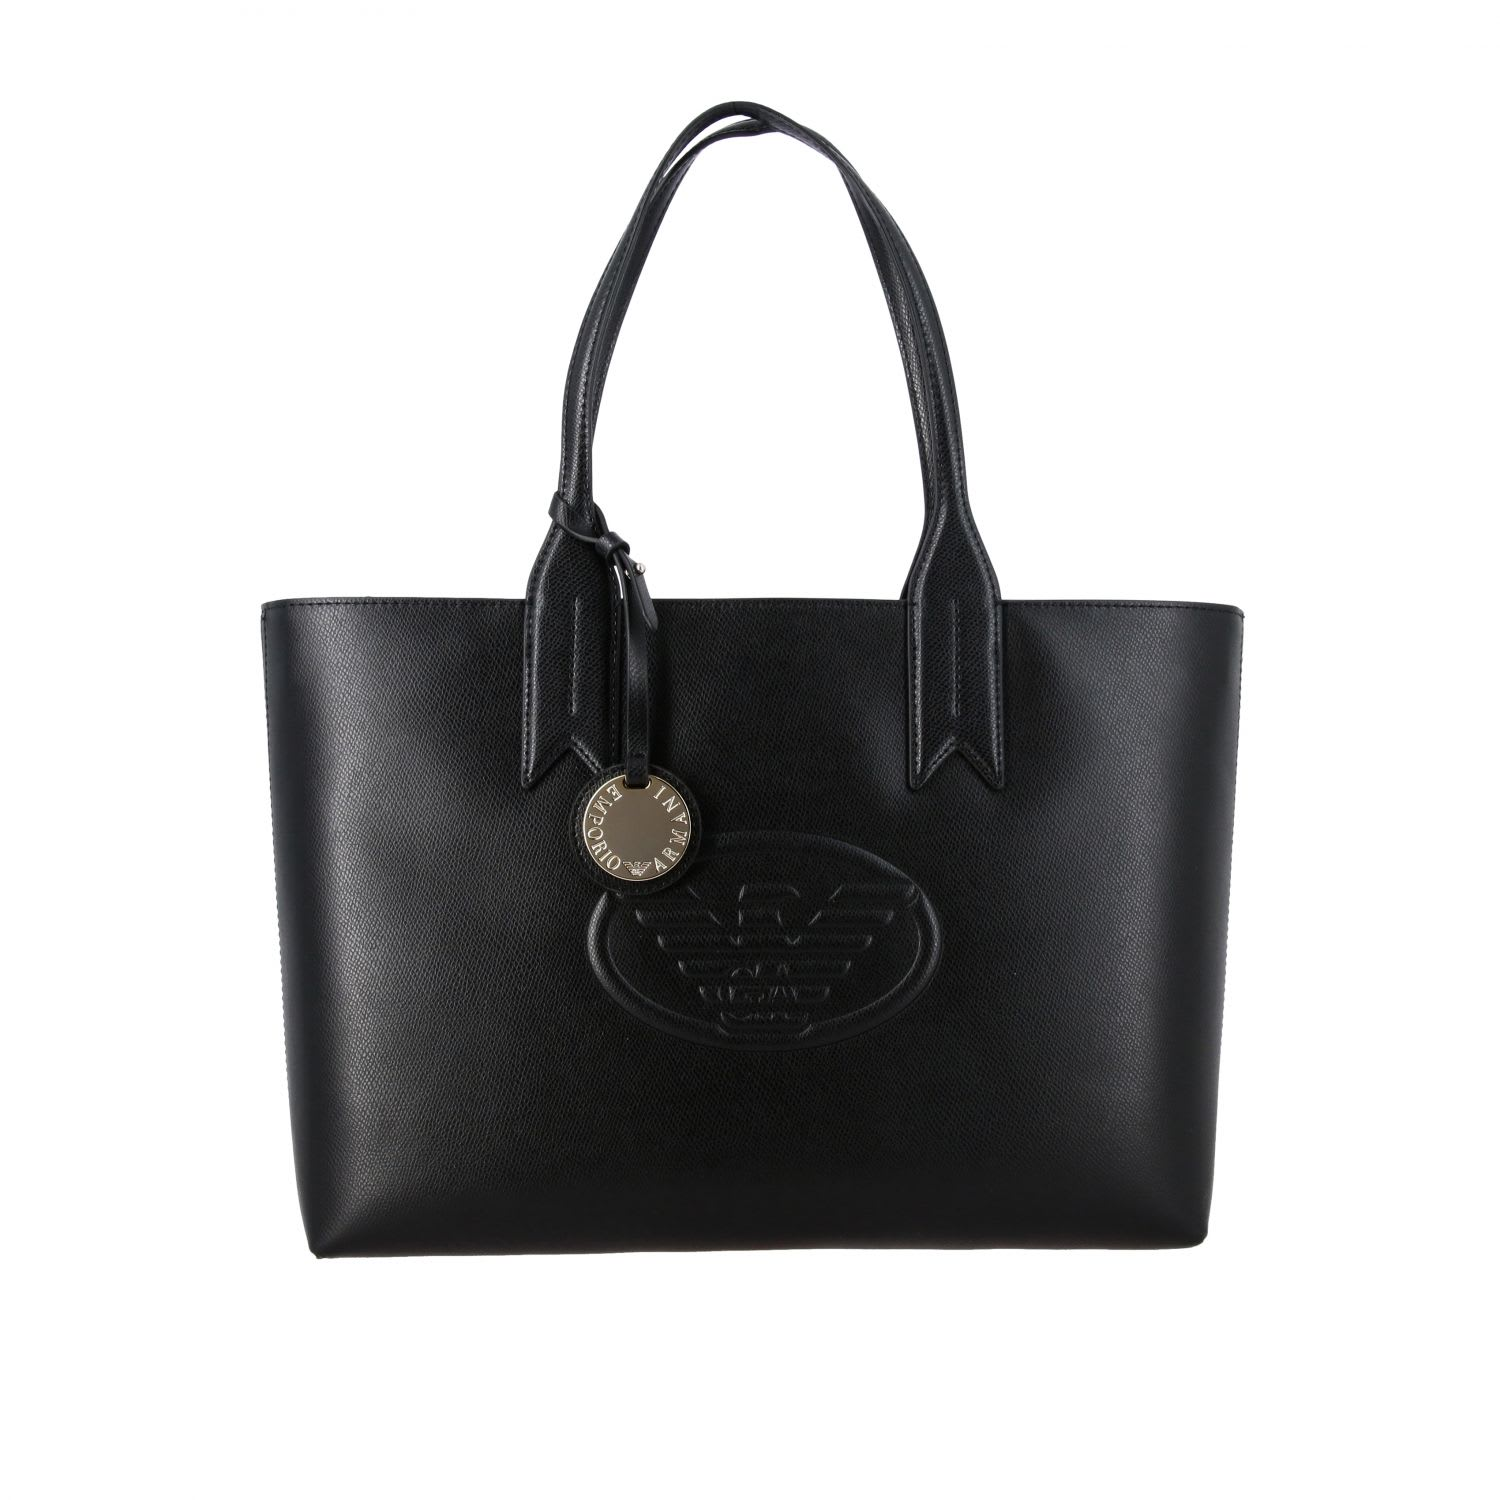 Emporio Armani Shopping Bag In Synthetic Leather With Logo In Black